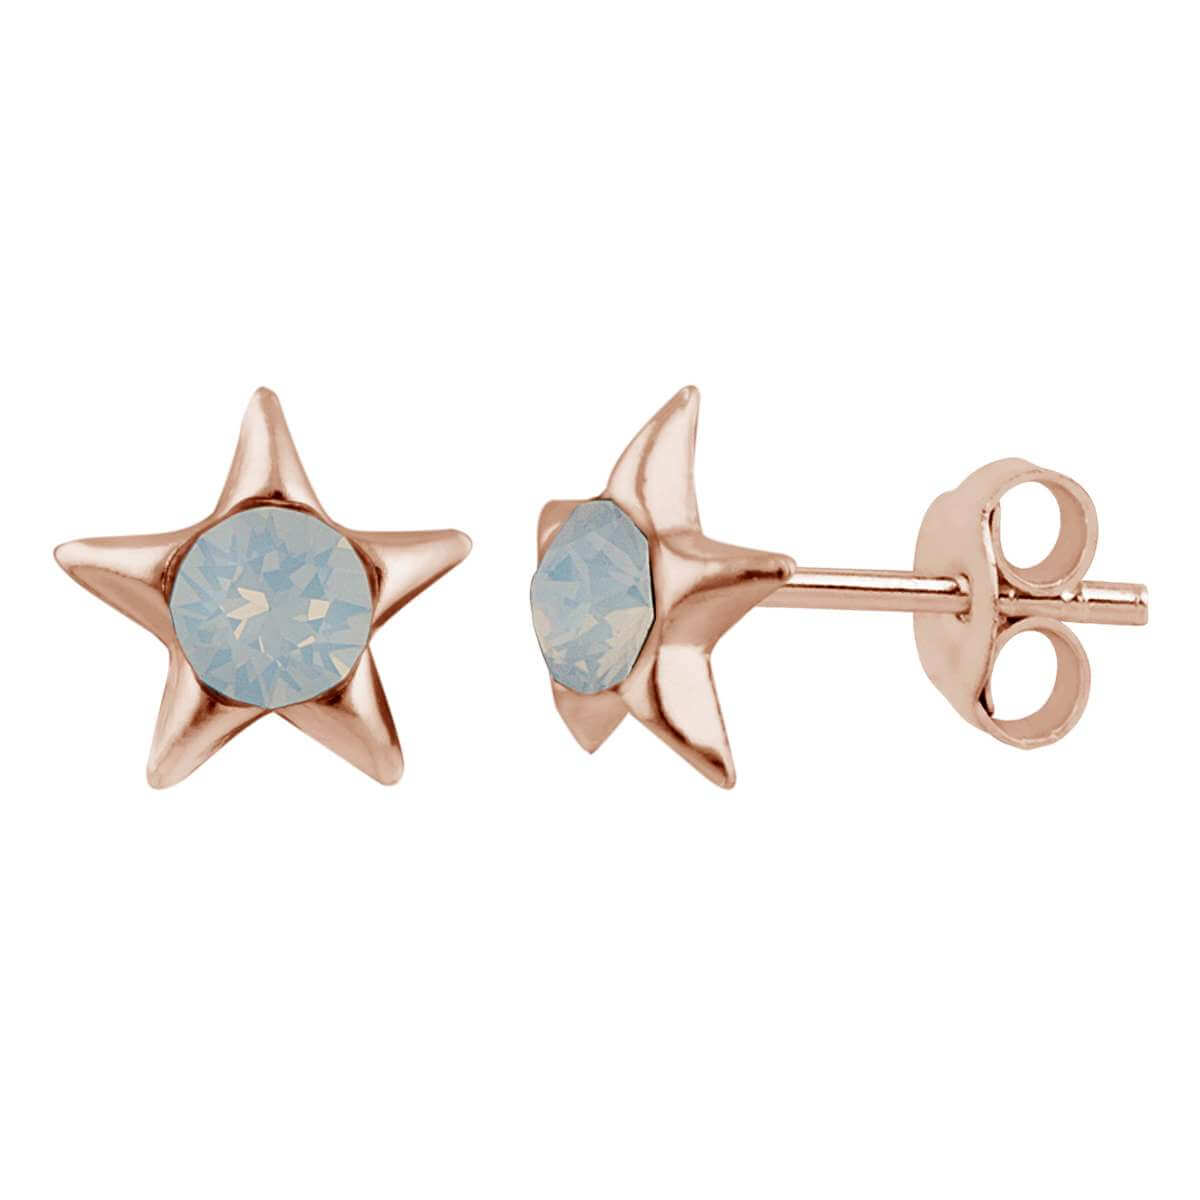 Rose Gold Plated Sterling Silver & White Faux Opal Star Stud Earrings